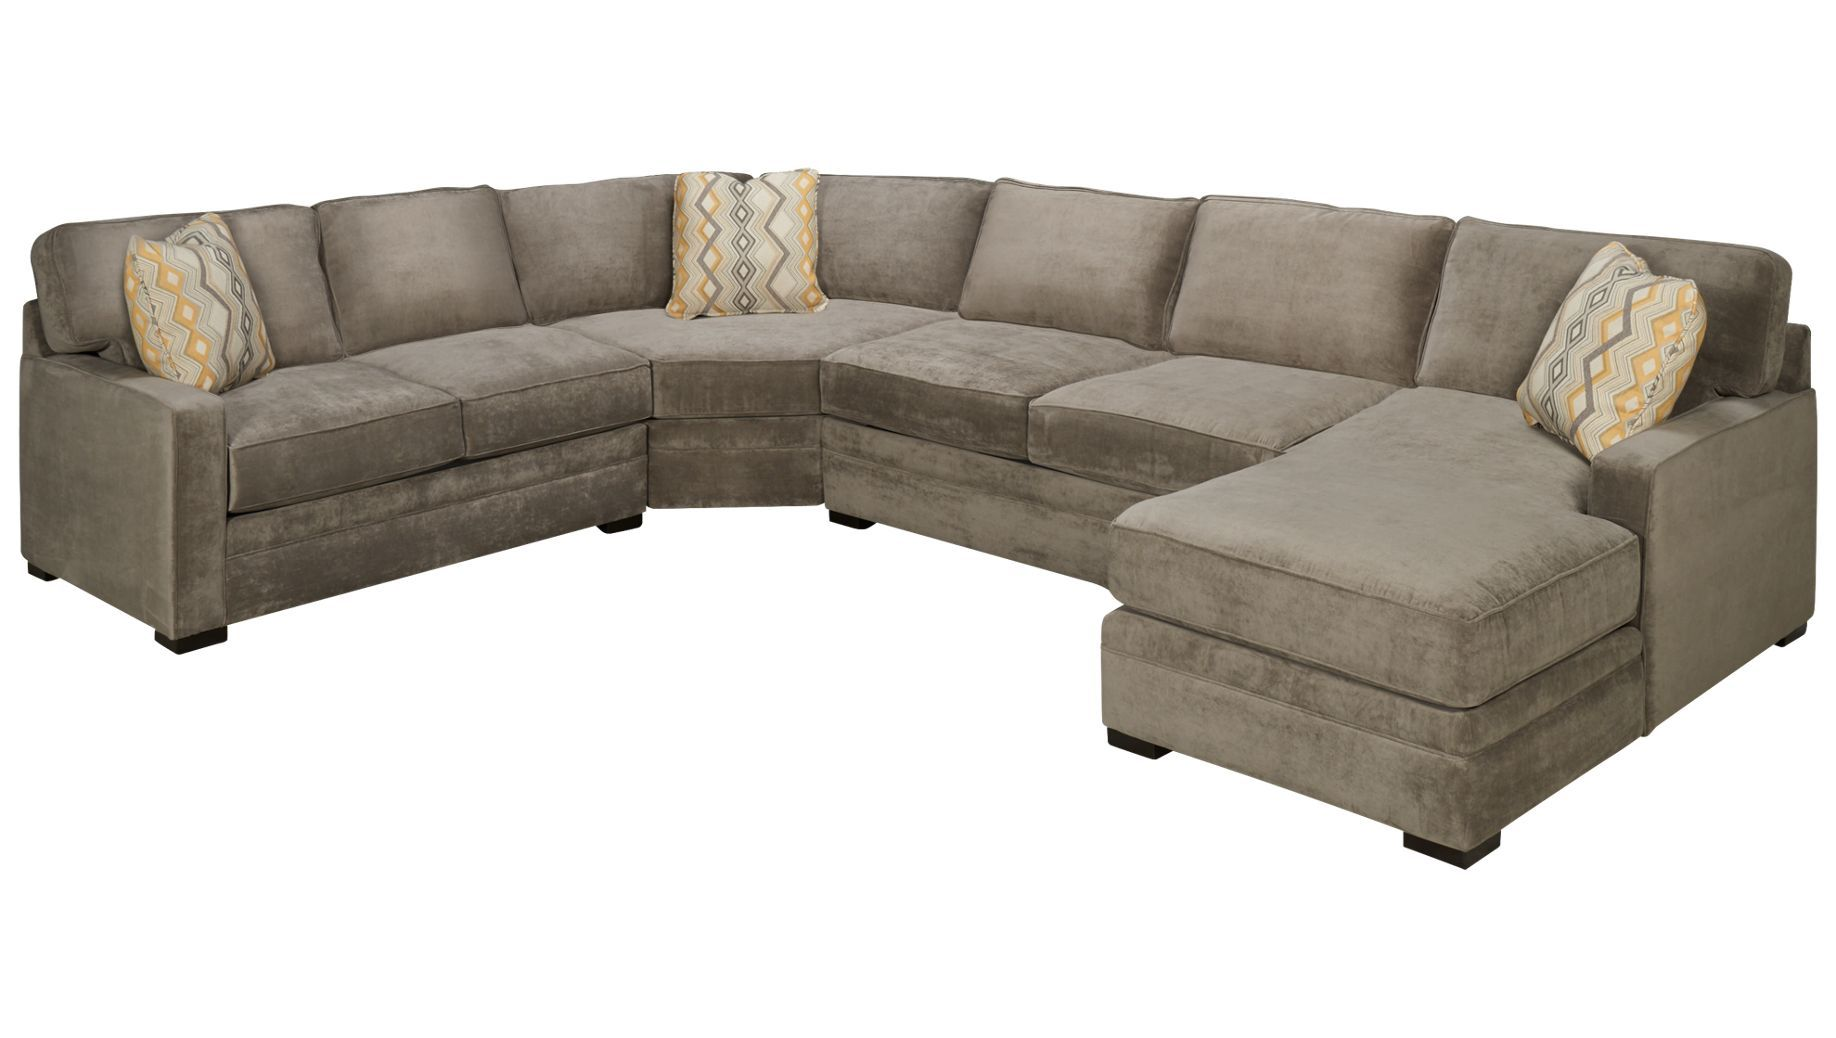 Jonathan Louis Choices Choices 4 Piece Sectional Jordan S Furniture Customize Upholstery In Navy C Family Room Makeover Jonathan Louis Sectional Sectional